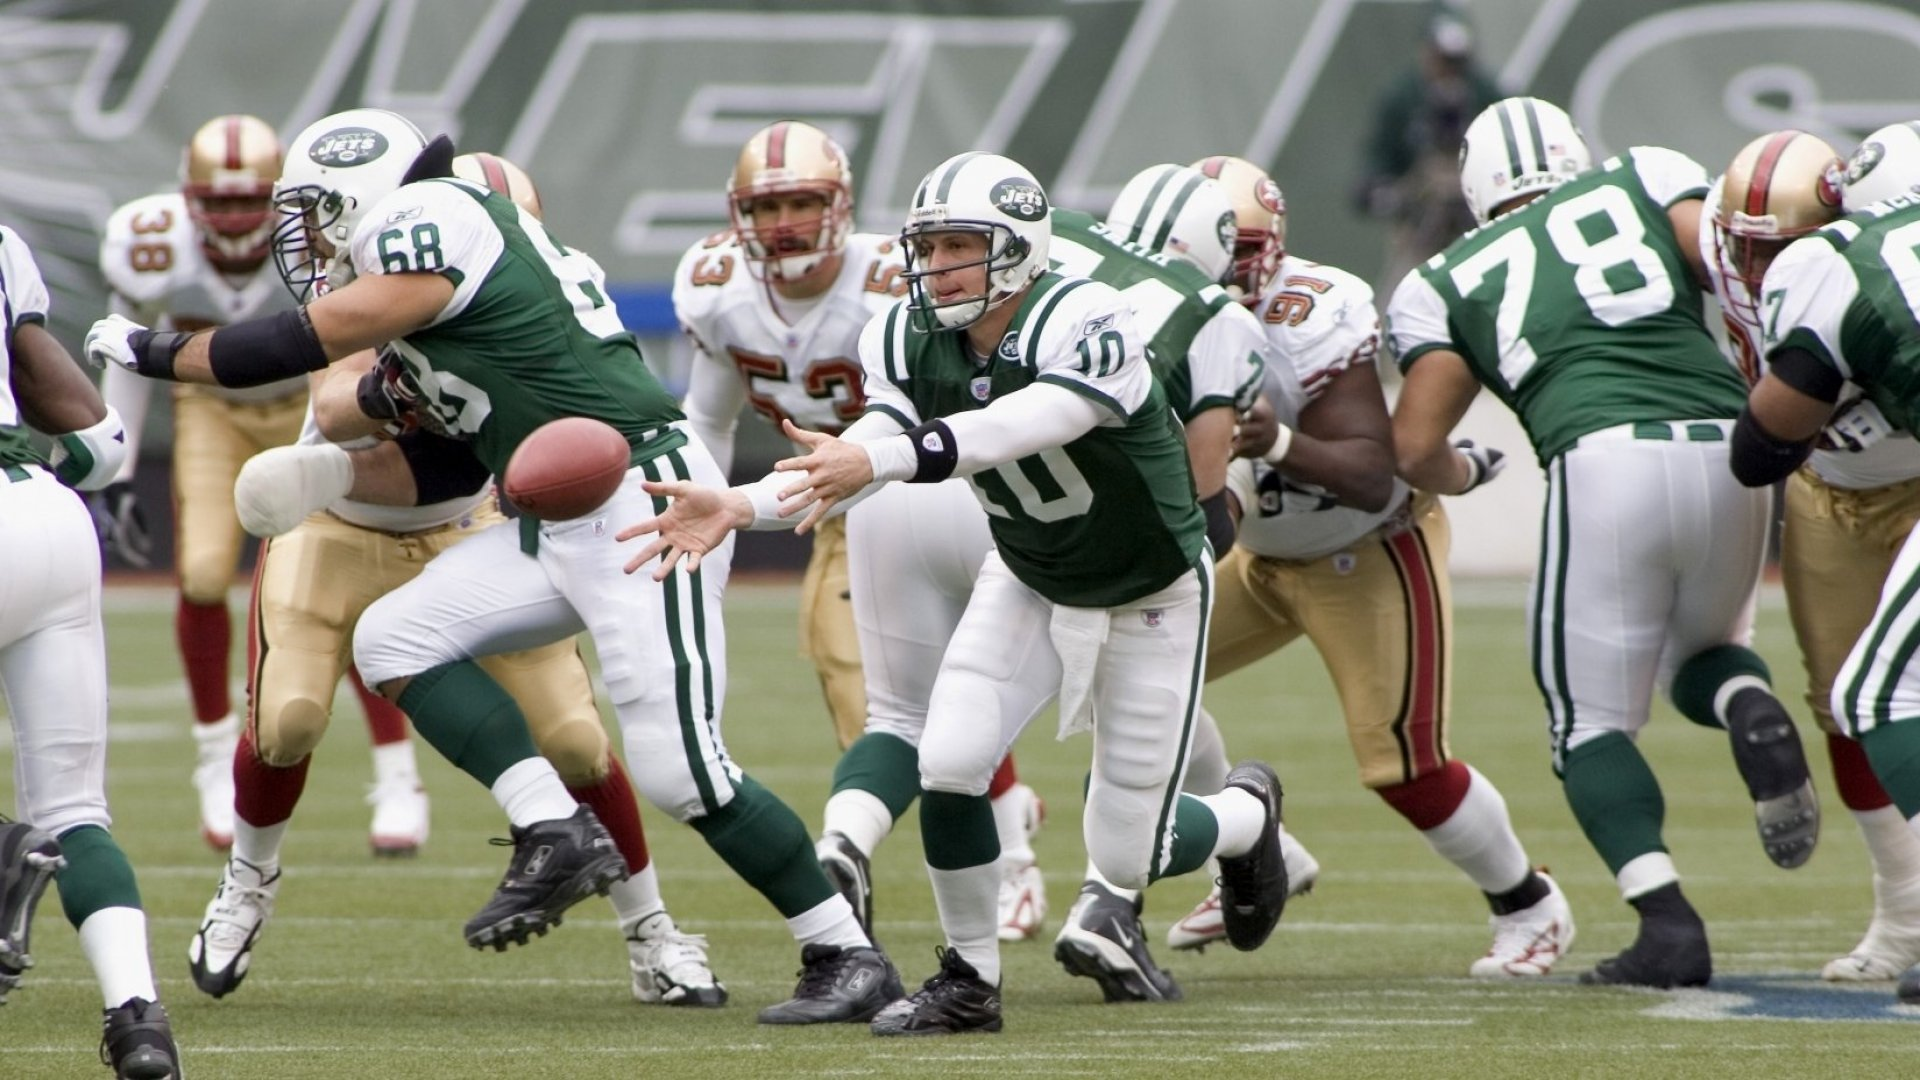 The New York Jets (in the foreground).